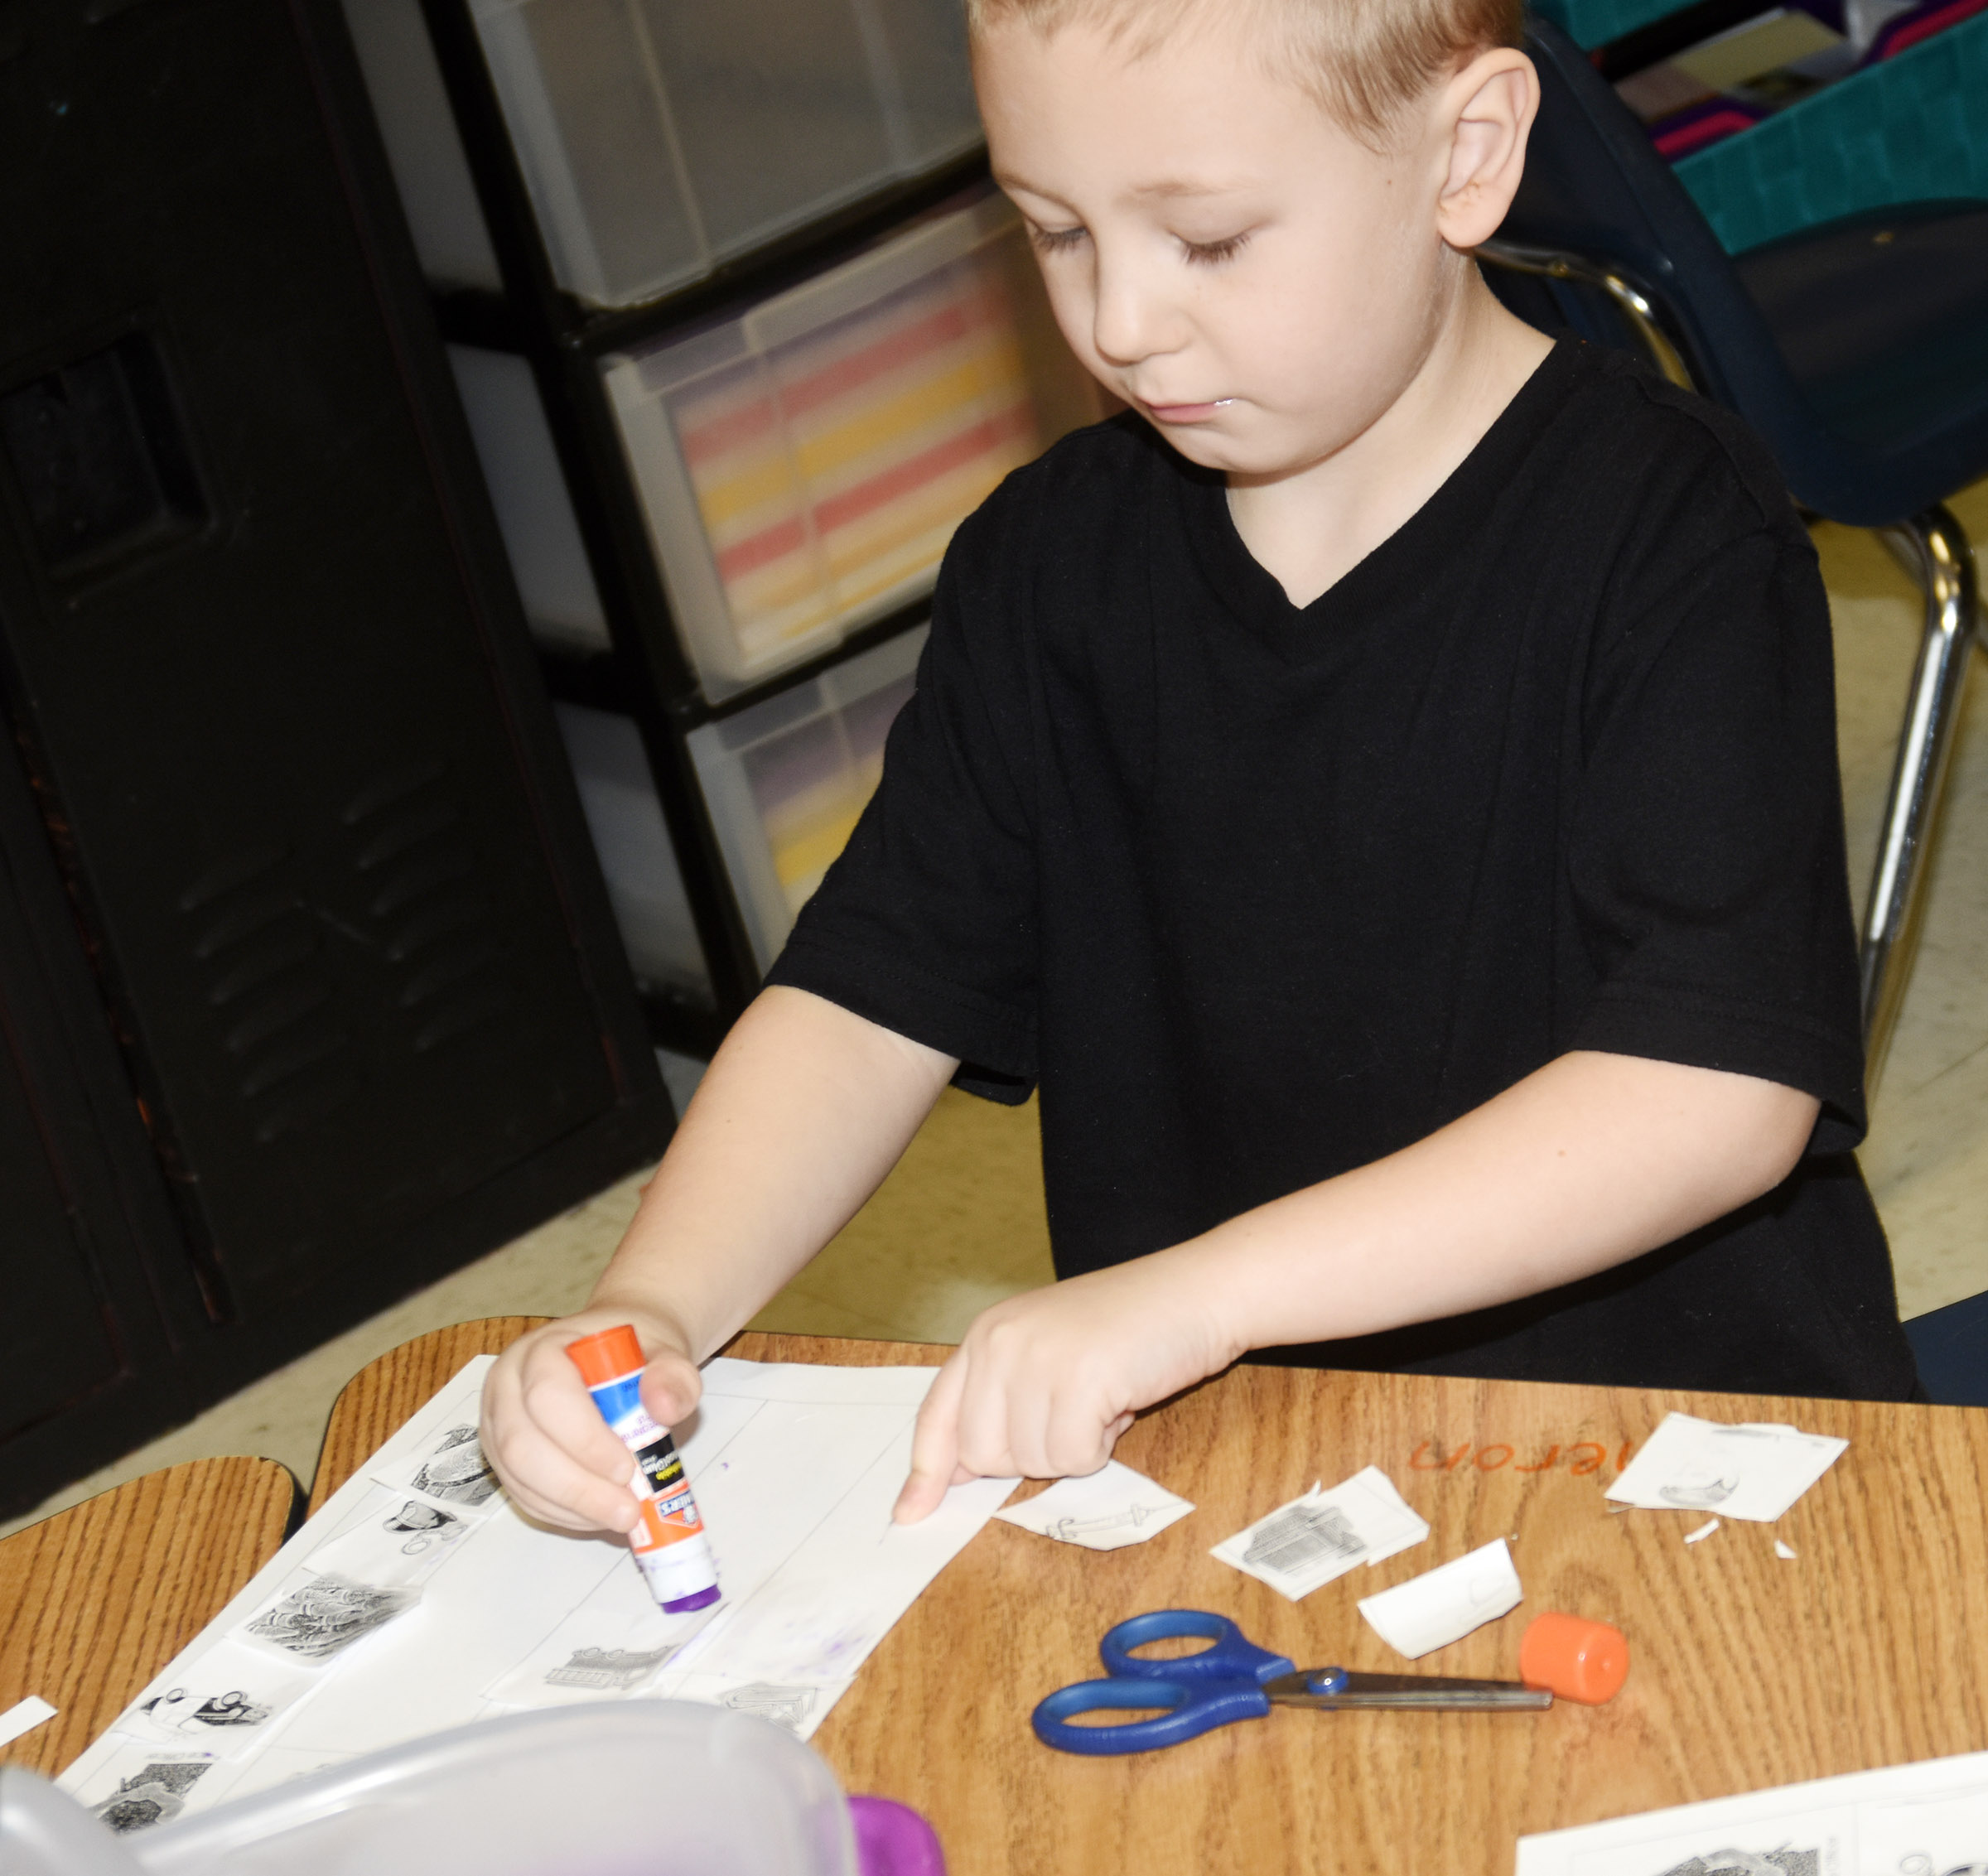 CES kindergartener Cameron Dean matches items that police officers, fire fighters, doctors and teachers use to the correct profession.